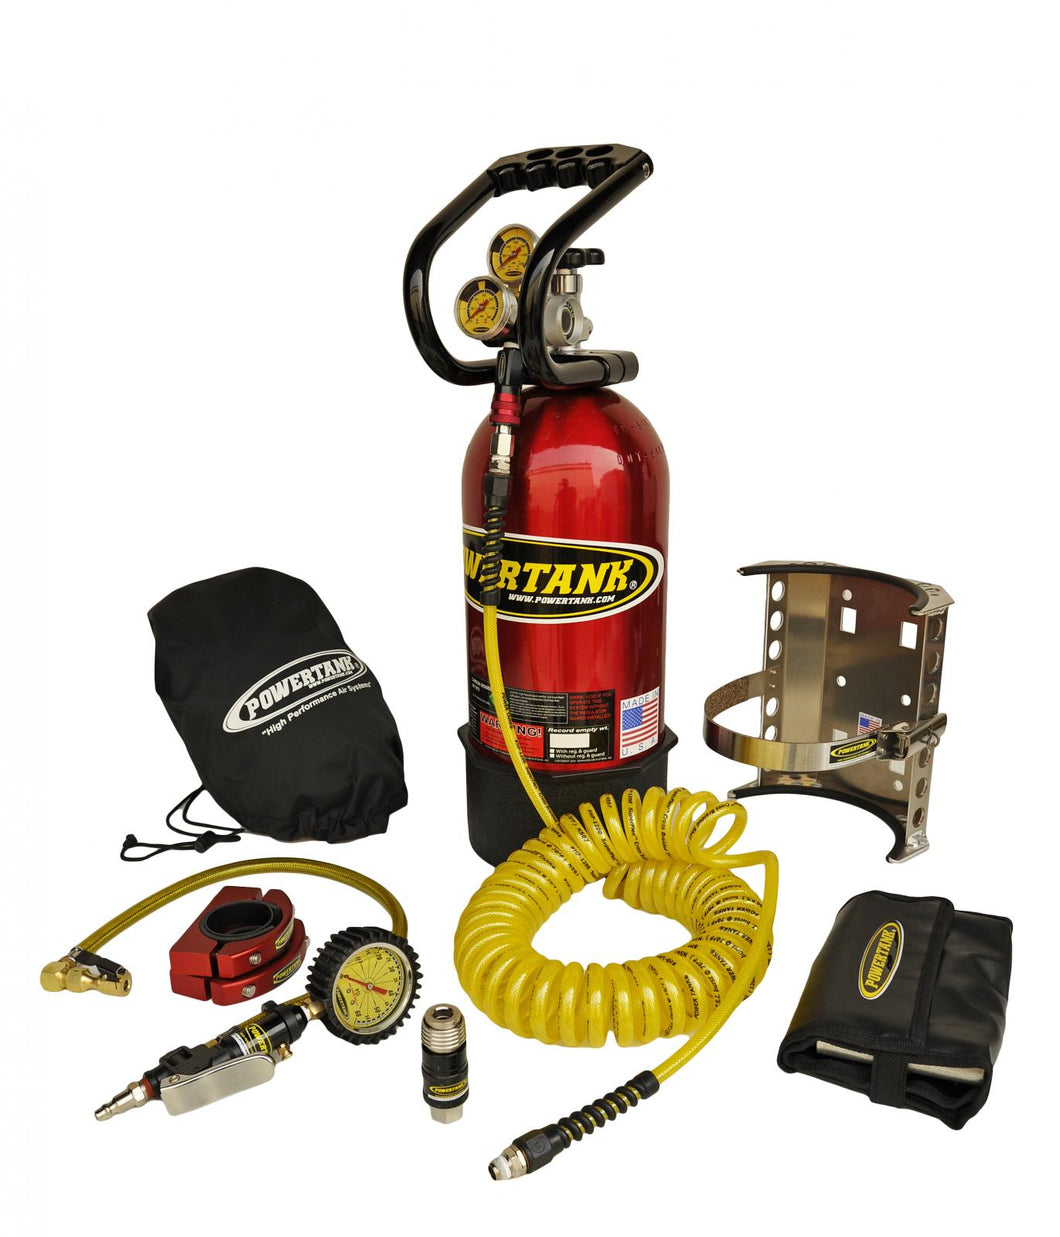 CO2 Tank 10 LB Package C System 250 PSI W/Power Flow II and Roll Bar Clamps Candy Red Power Tank